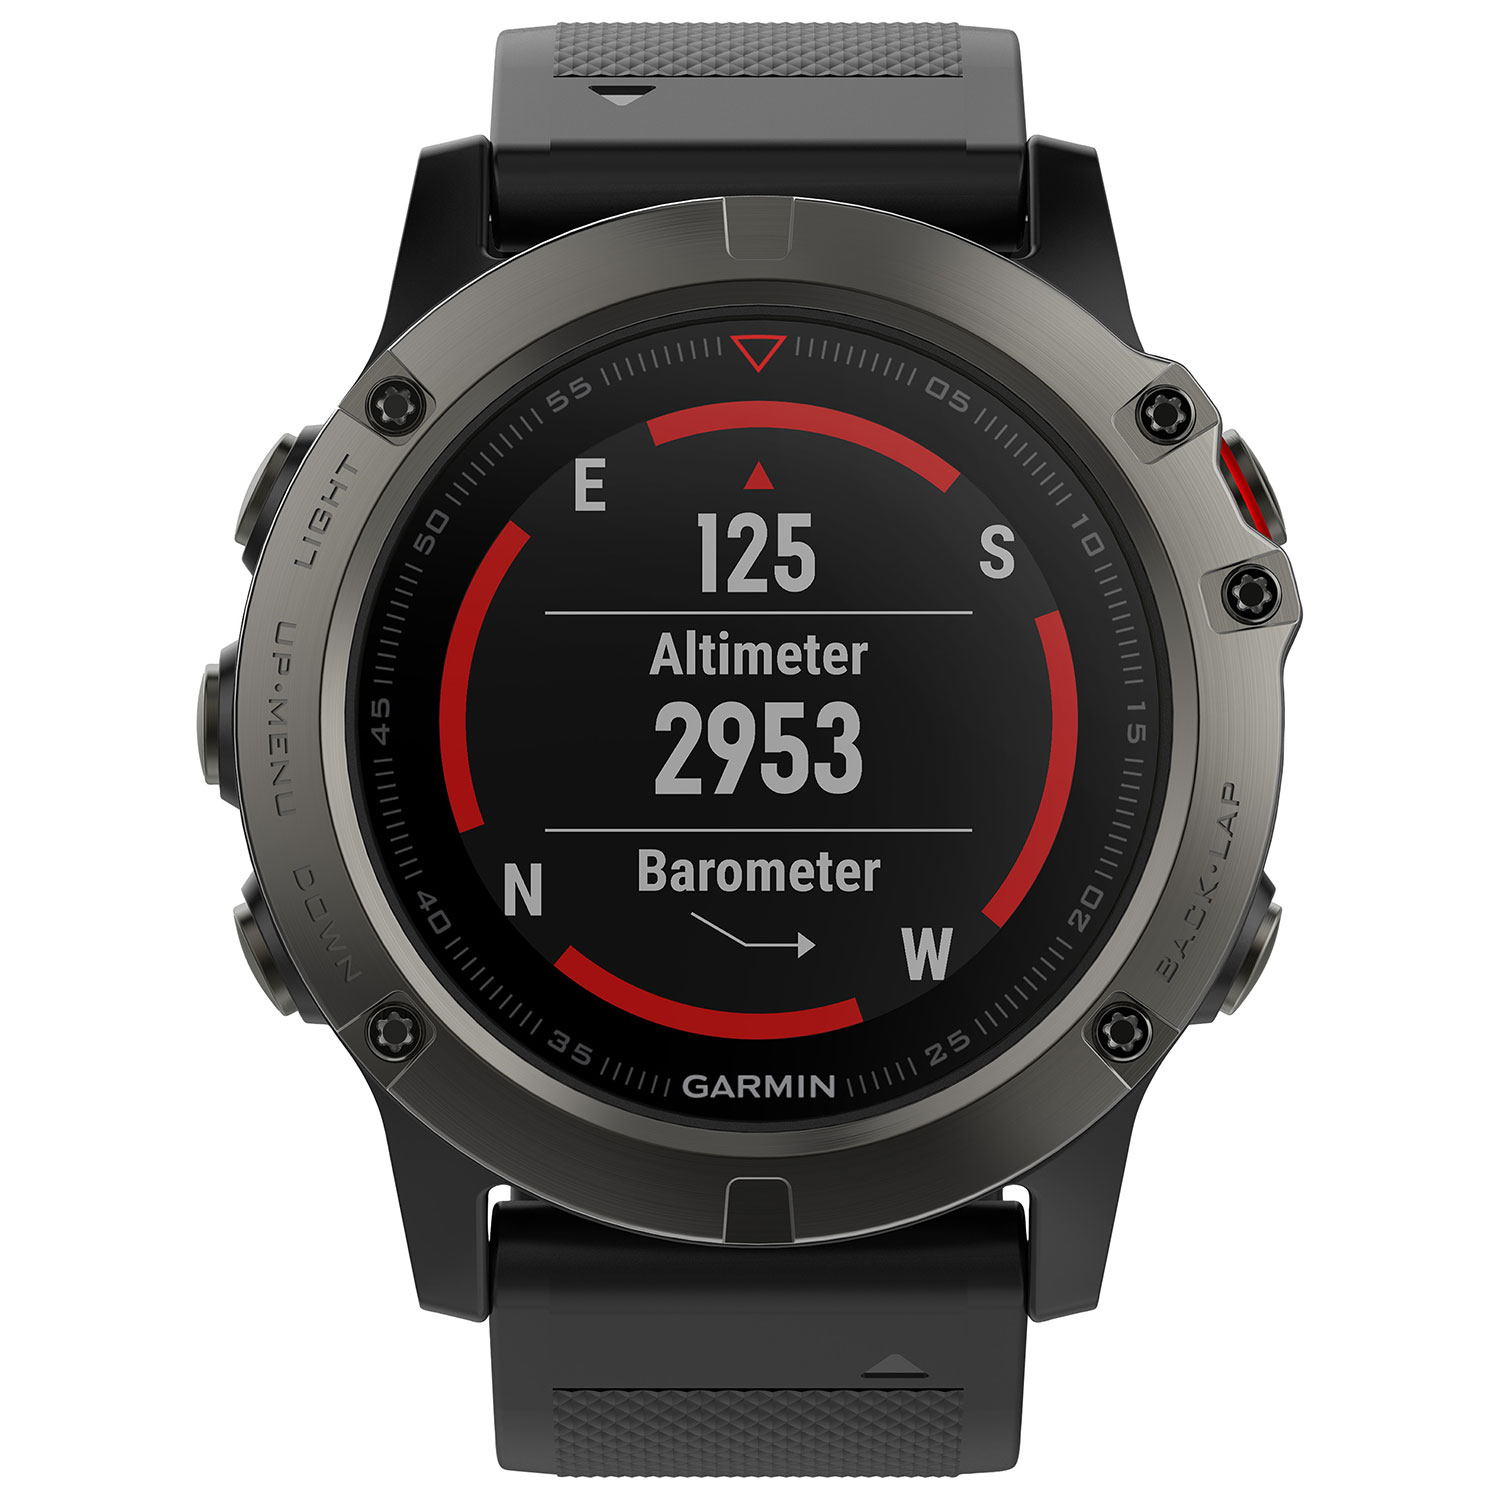 gps run electronics and products c training watches fitness en running navigation